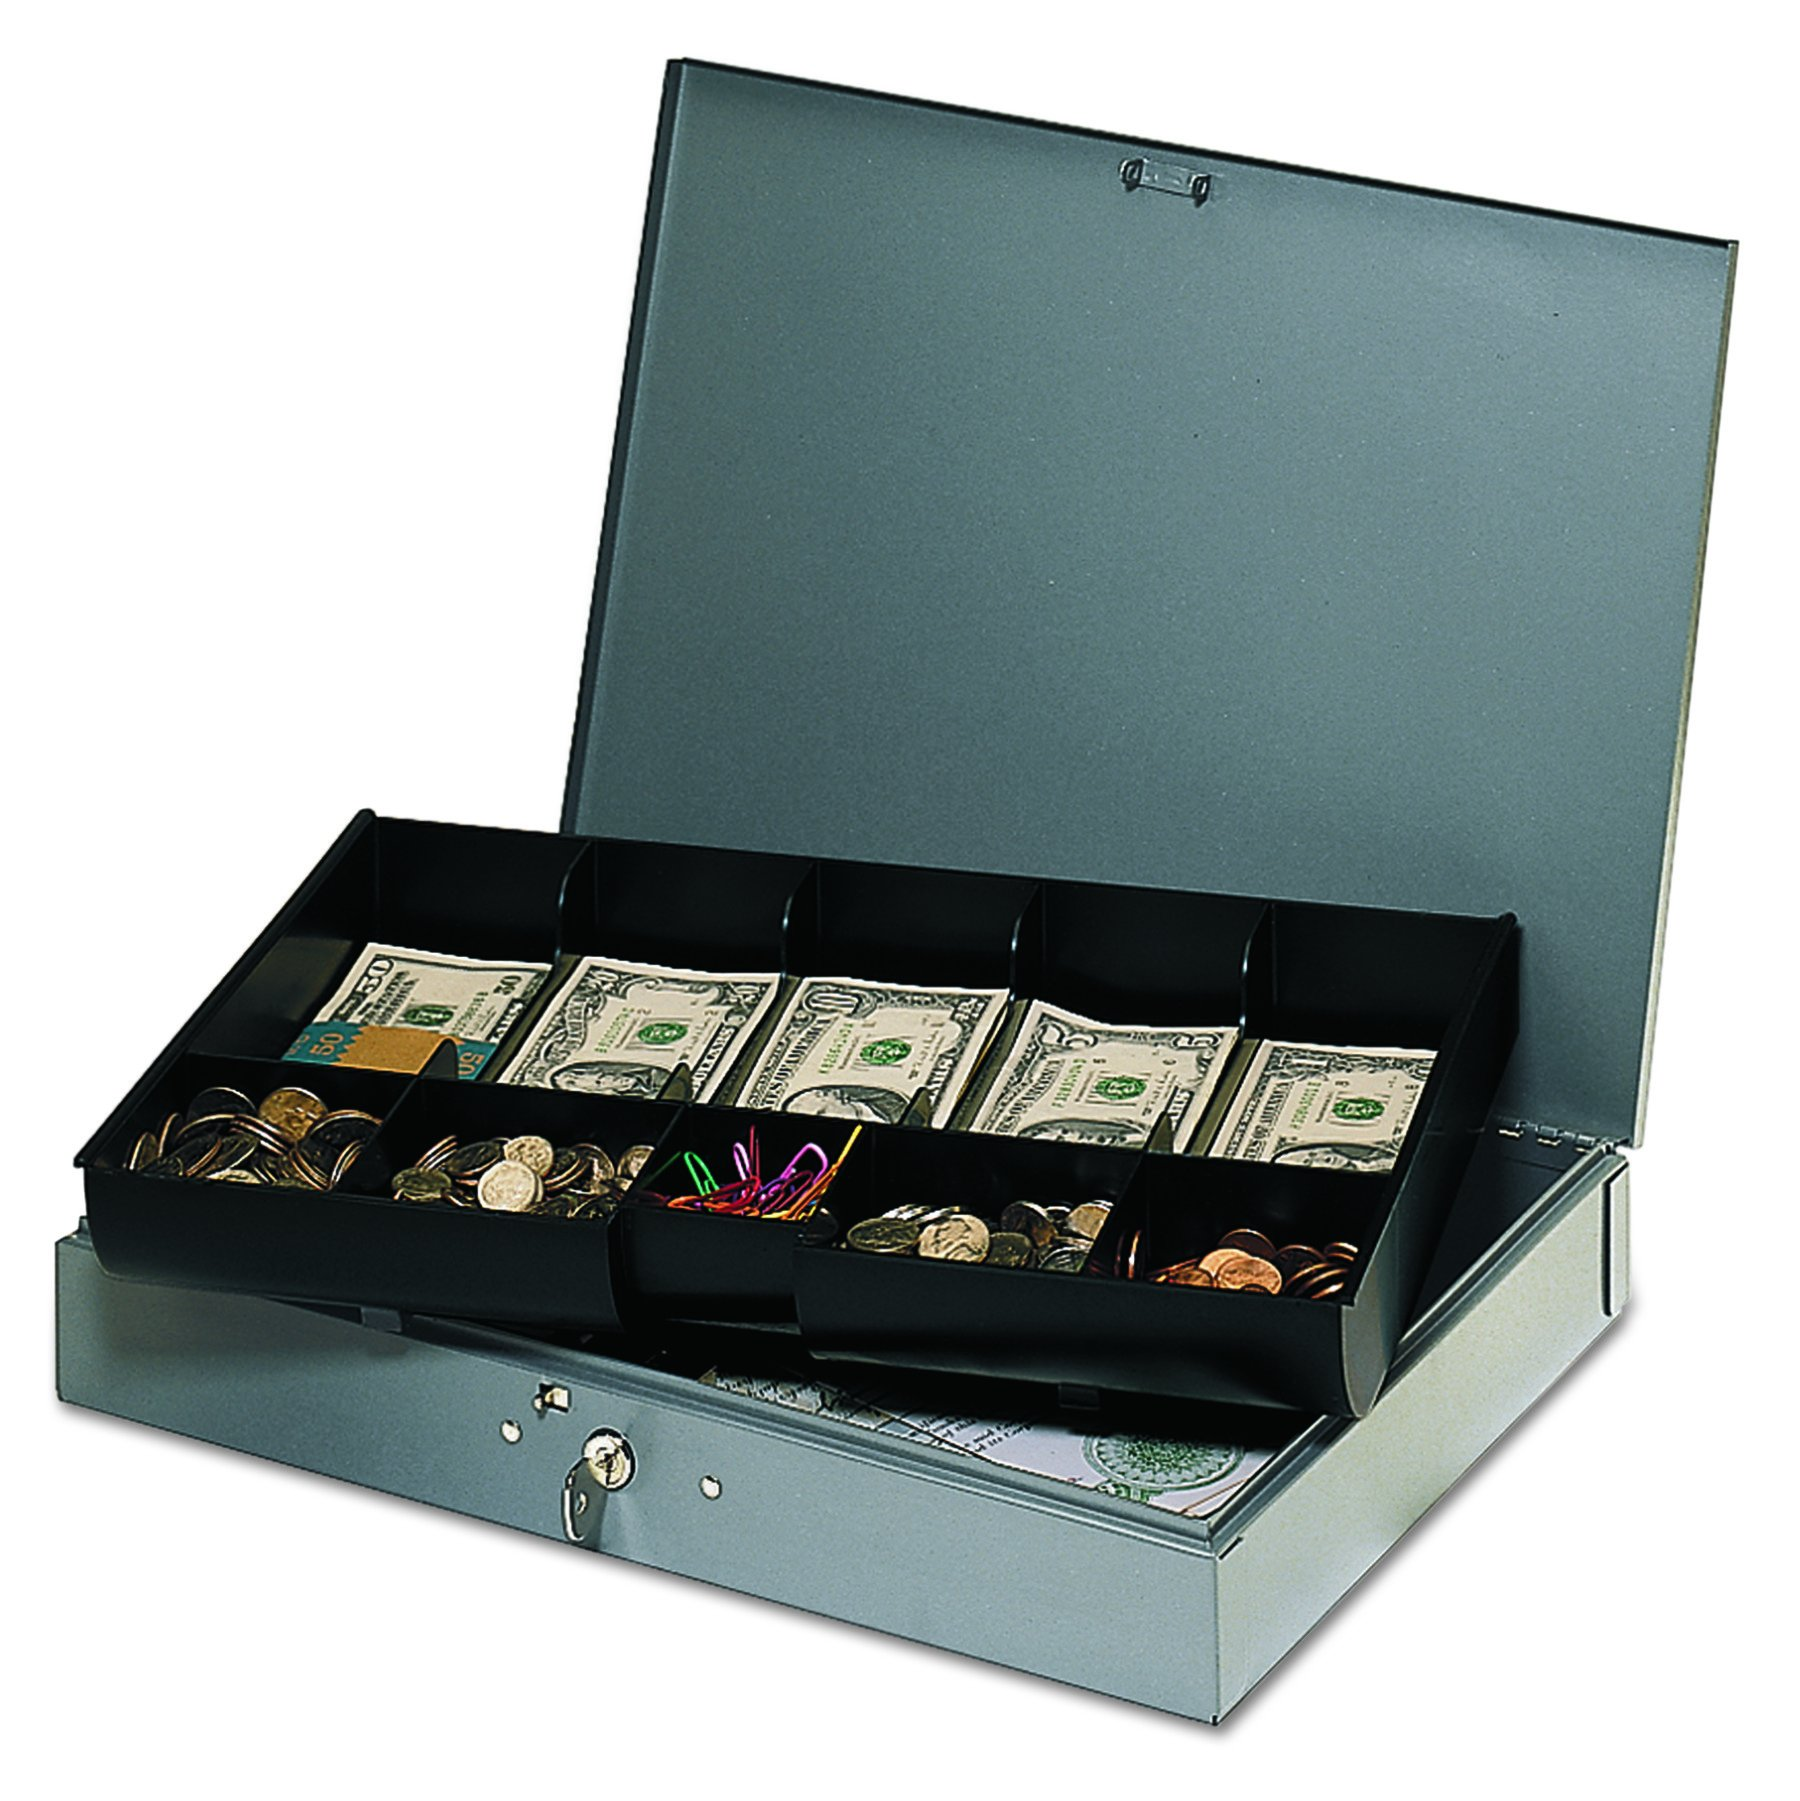 STEELMASTER Low Profile Steel Cash Box with 10 Compartments, Gray (2215CBTGY) by MMF Industries